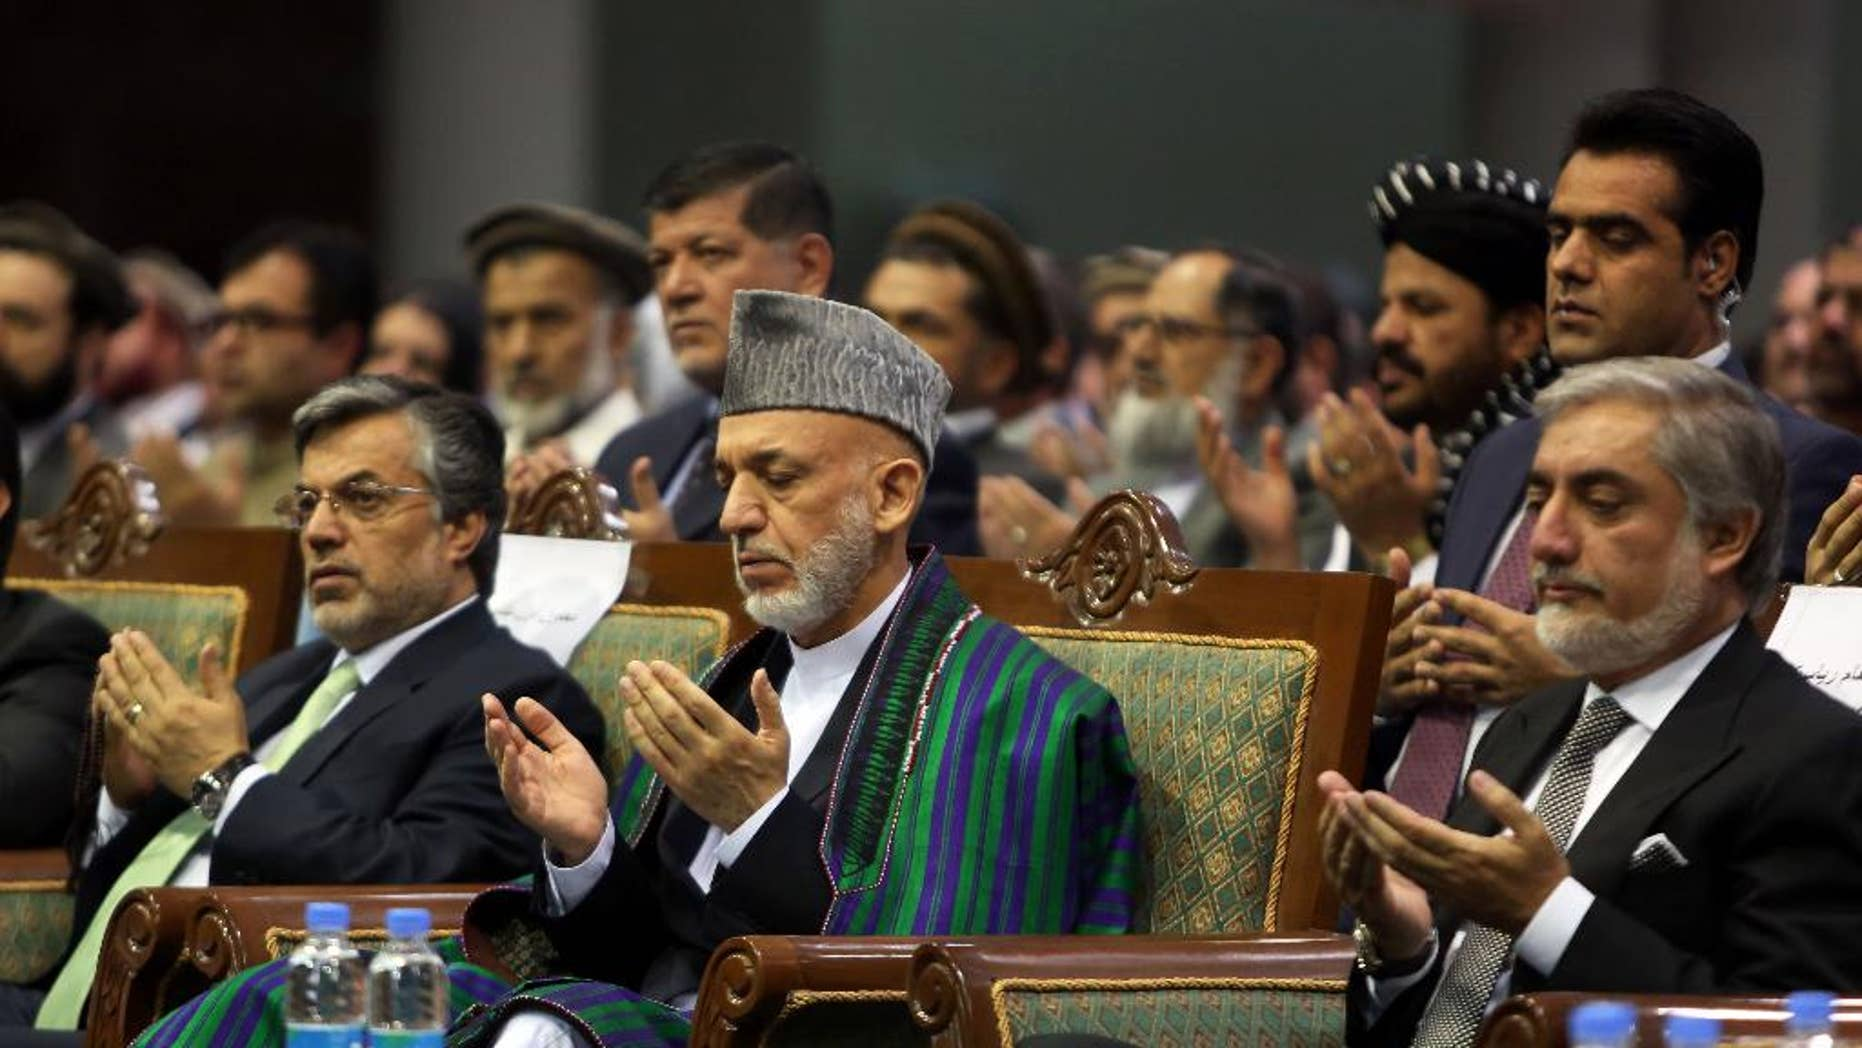 Afghan President Hamid Karzai, center, and Afghan presidential candidate Abdullah Abdullah pray during a ceremony marking the third anniversary of the assassination of former Afghan President Burhanuddin Rabbani in Kabul, Afghanistan, Saturday, Sept. 20, 2014. In 2011, an insurgent with a bomb wrapped in his turban assassinated Rabbani, who was leading a government effort to broker peace with the Taliban. (AP Photo/Rahmat Gul)